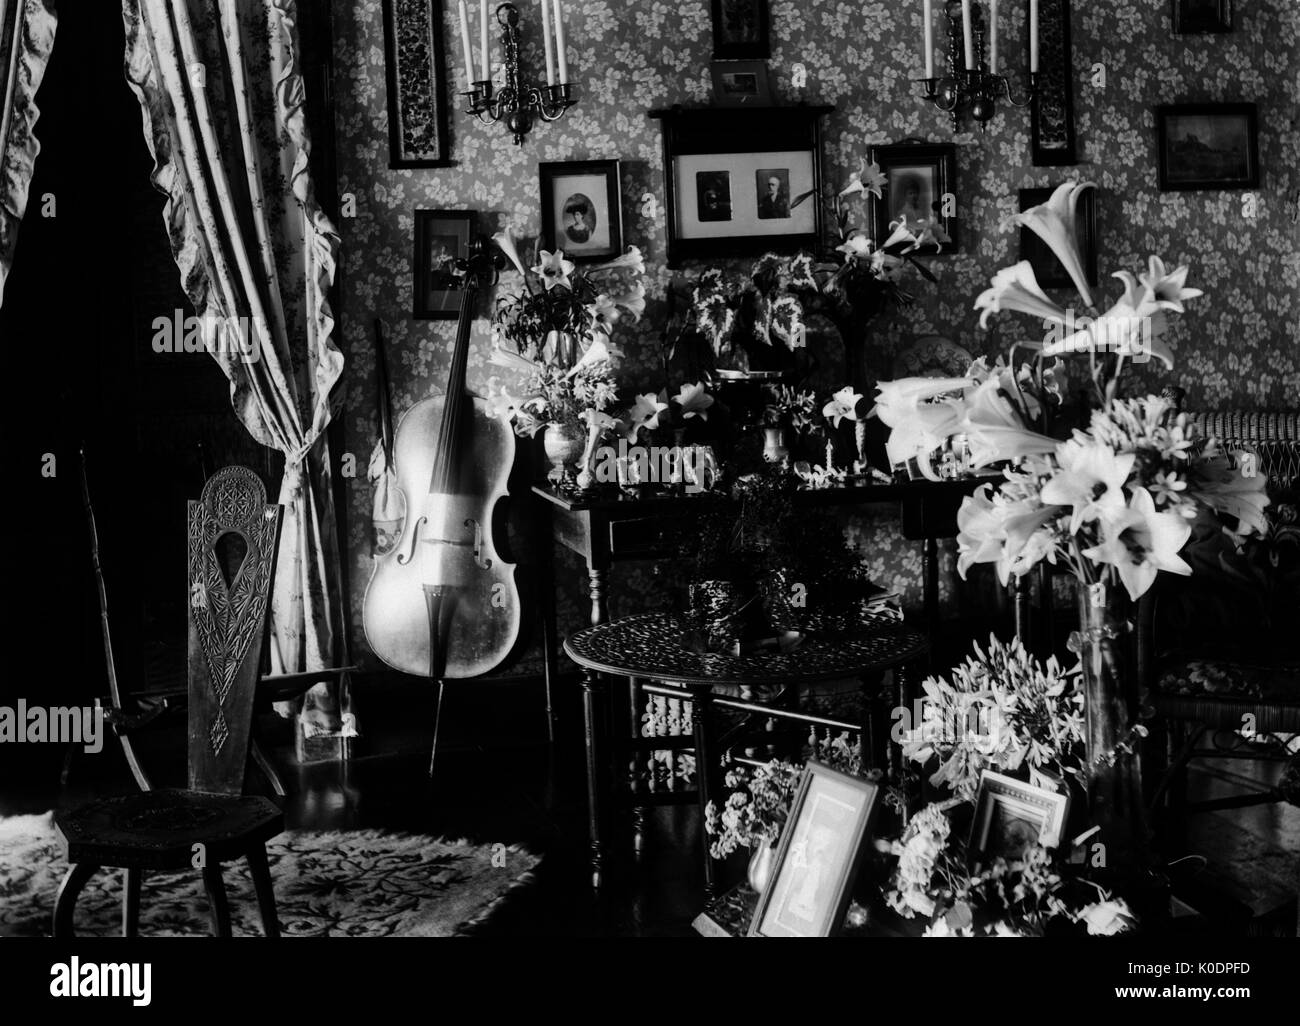 EDWARDIAN ERA INTERIOR   HOME INTERIOR FILLED WITH KNICK KNACKS, FLOWERS,  PICTURES, FURNITURE AND MUSICAL INSTRUMENT. PHOTOGRAPHER:UNKNOWN © DIGITAL  IMAGE ...